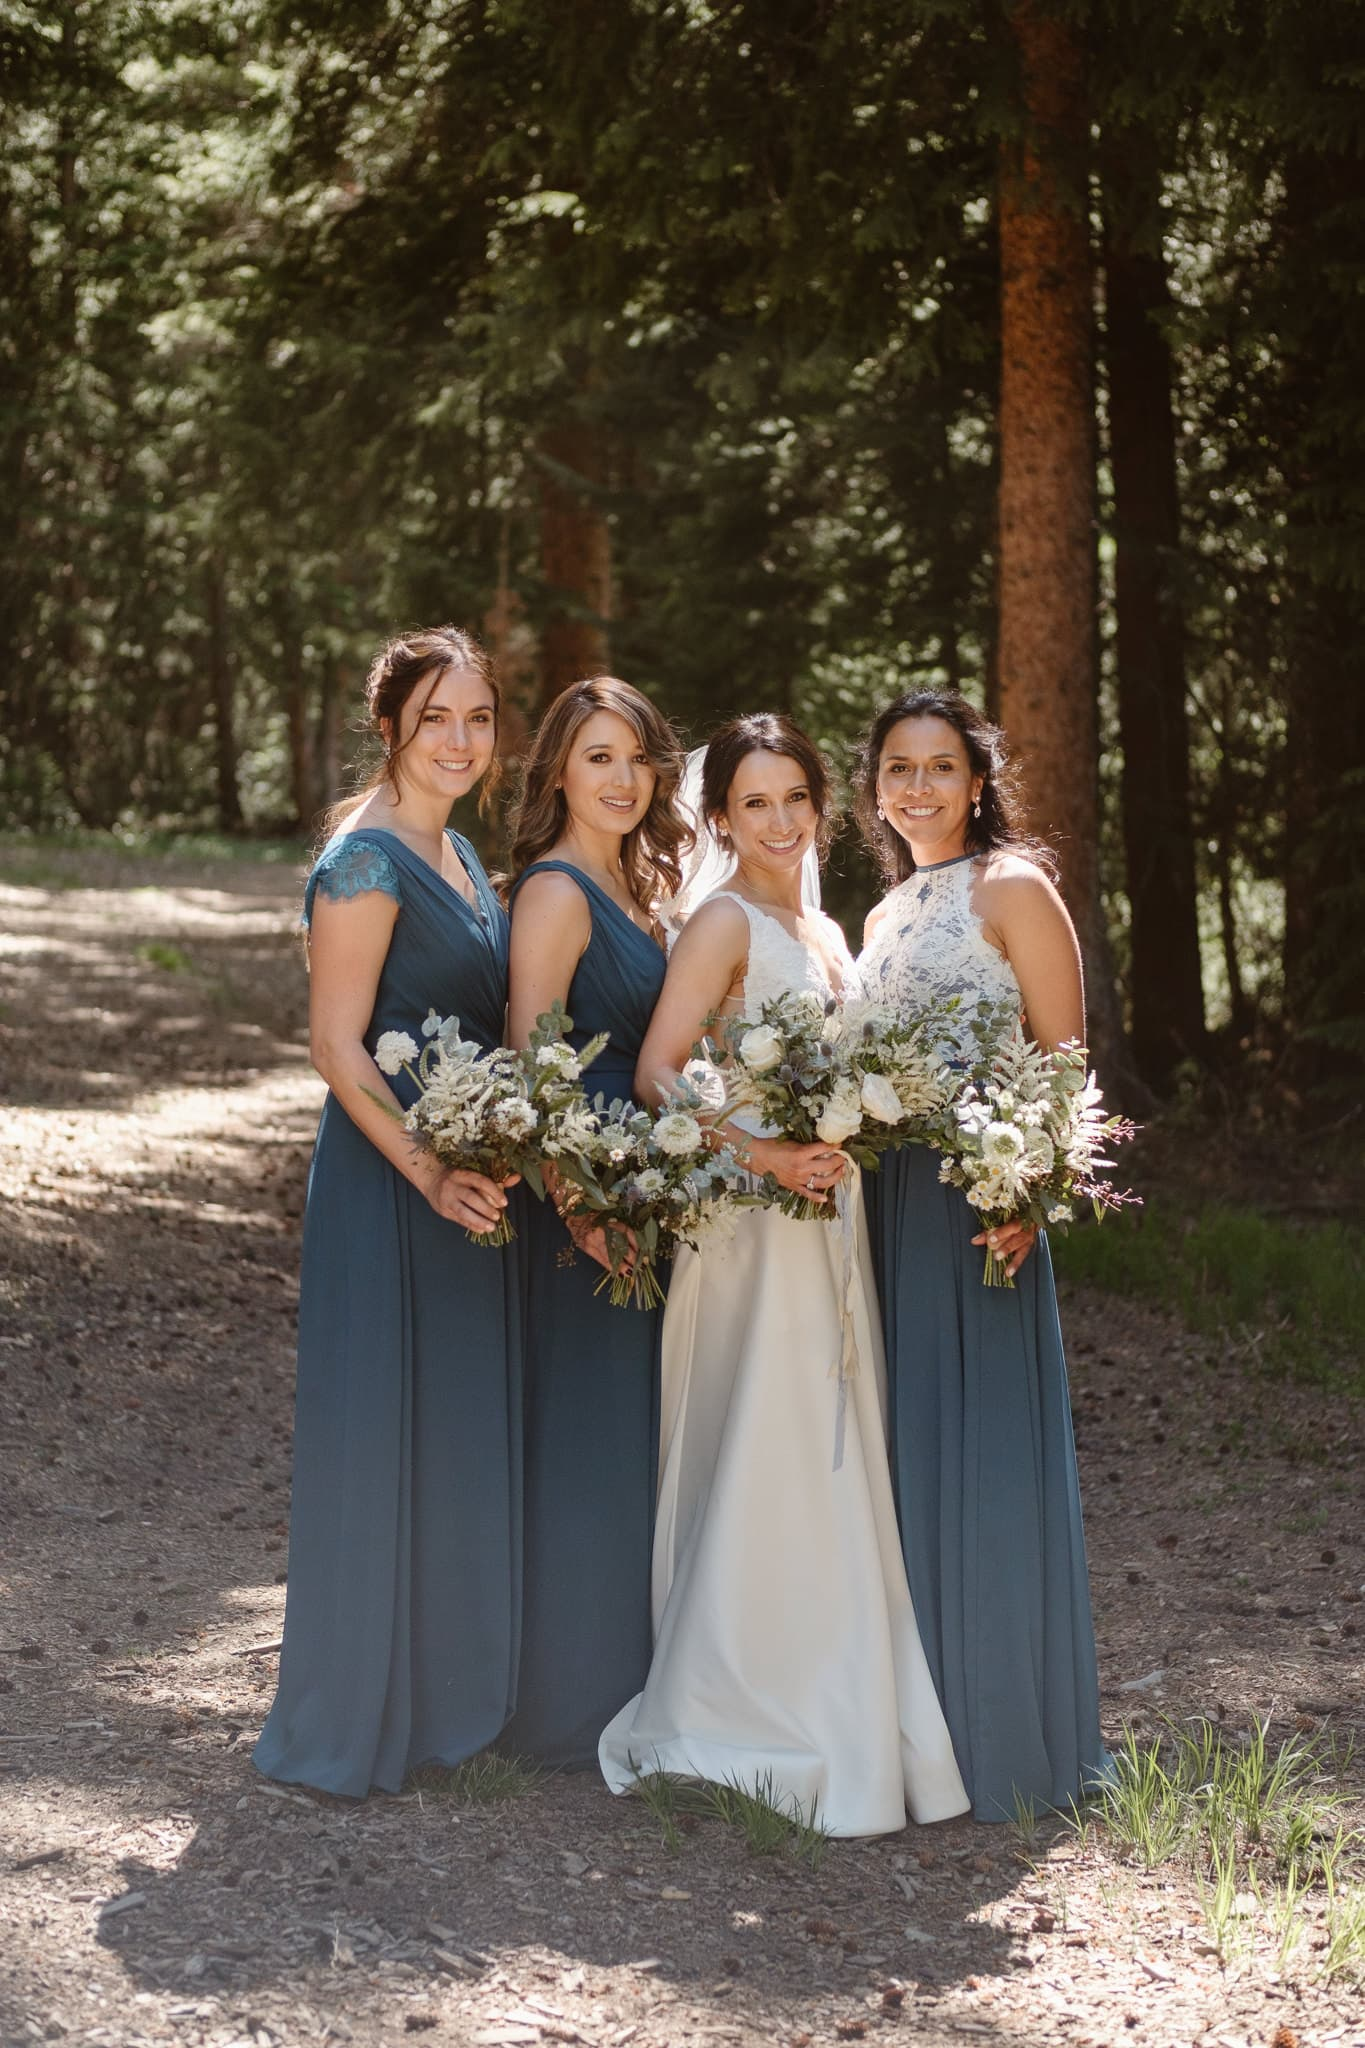 Bride with bridesmaids in the woods, teal blue bridesmaid dresses, Breckenridge Nordic Center wedding, Summit County wedding photographer